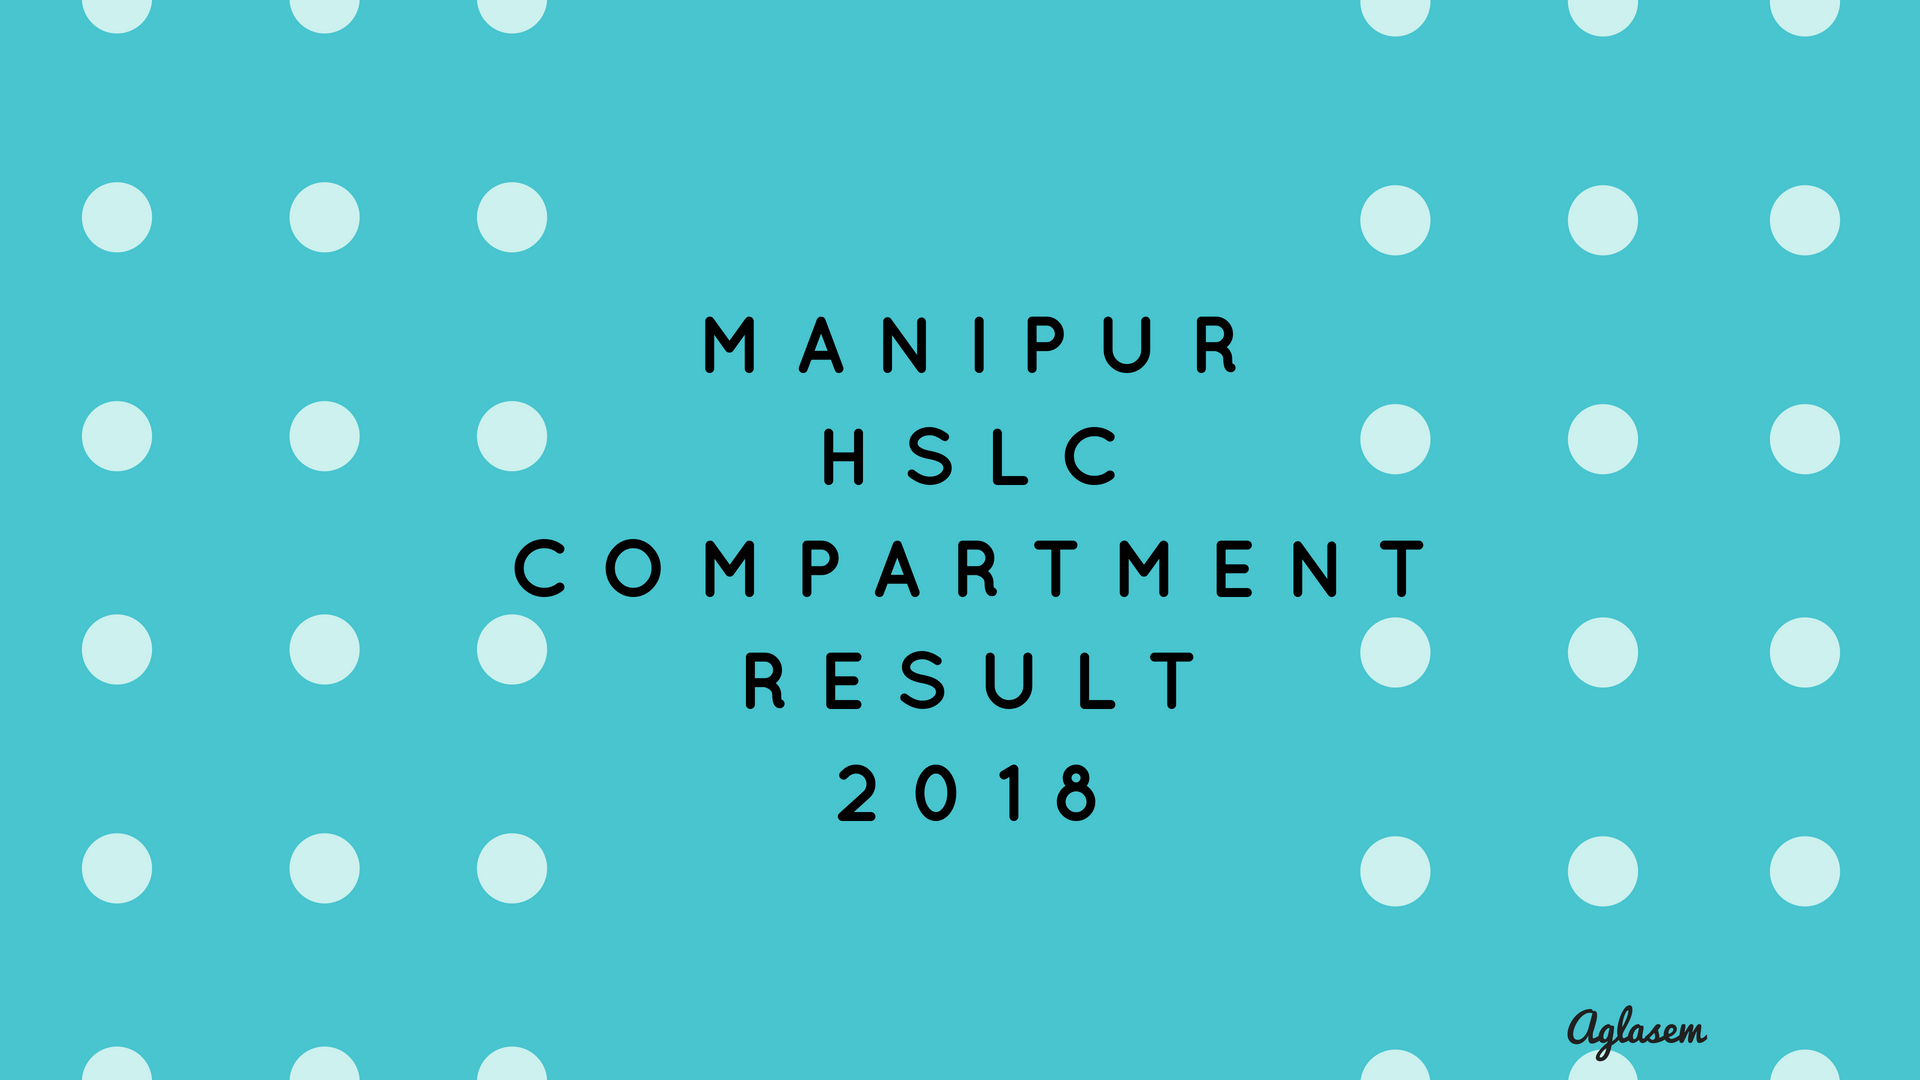 Manipur HSLC Compartment Result 2018